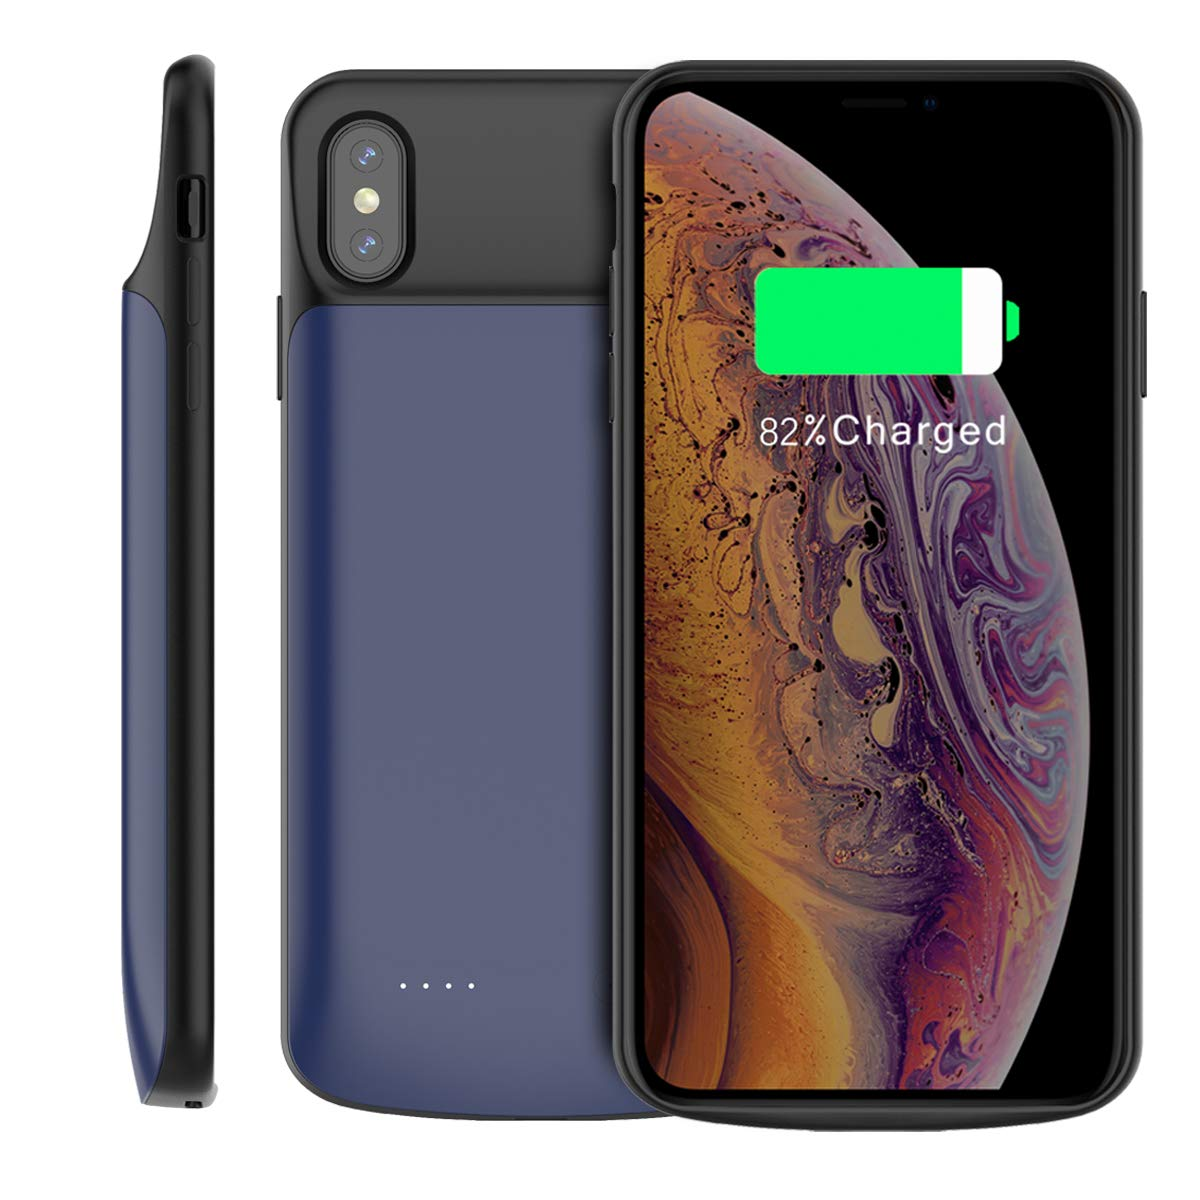 Casemall iPhone Xs Max 6000mAh Battery Case Portable Extended iPhone Xs Max 6000mAh Charging Case Skin Battery Juice Bank (Blue)